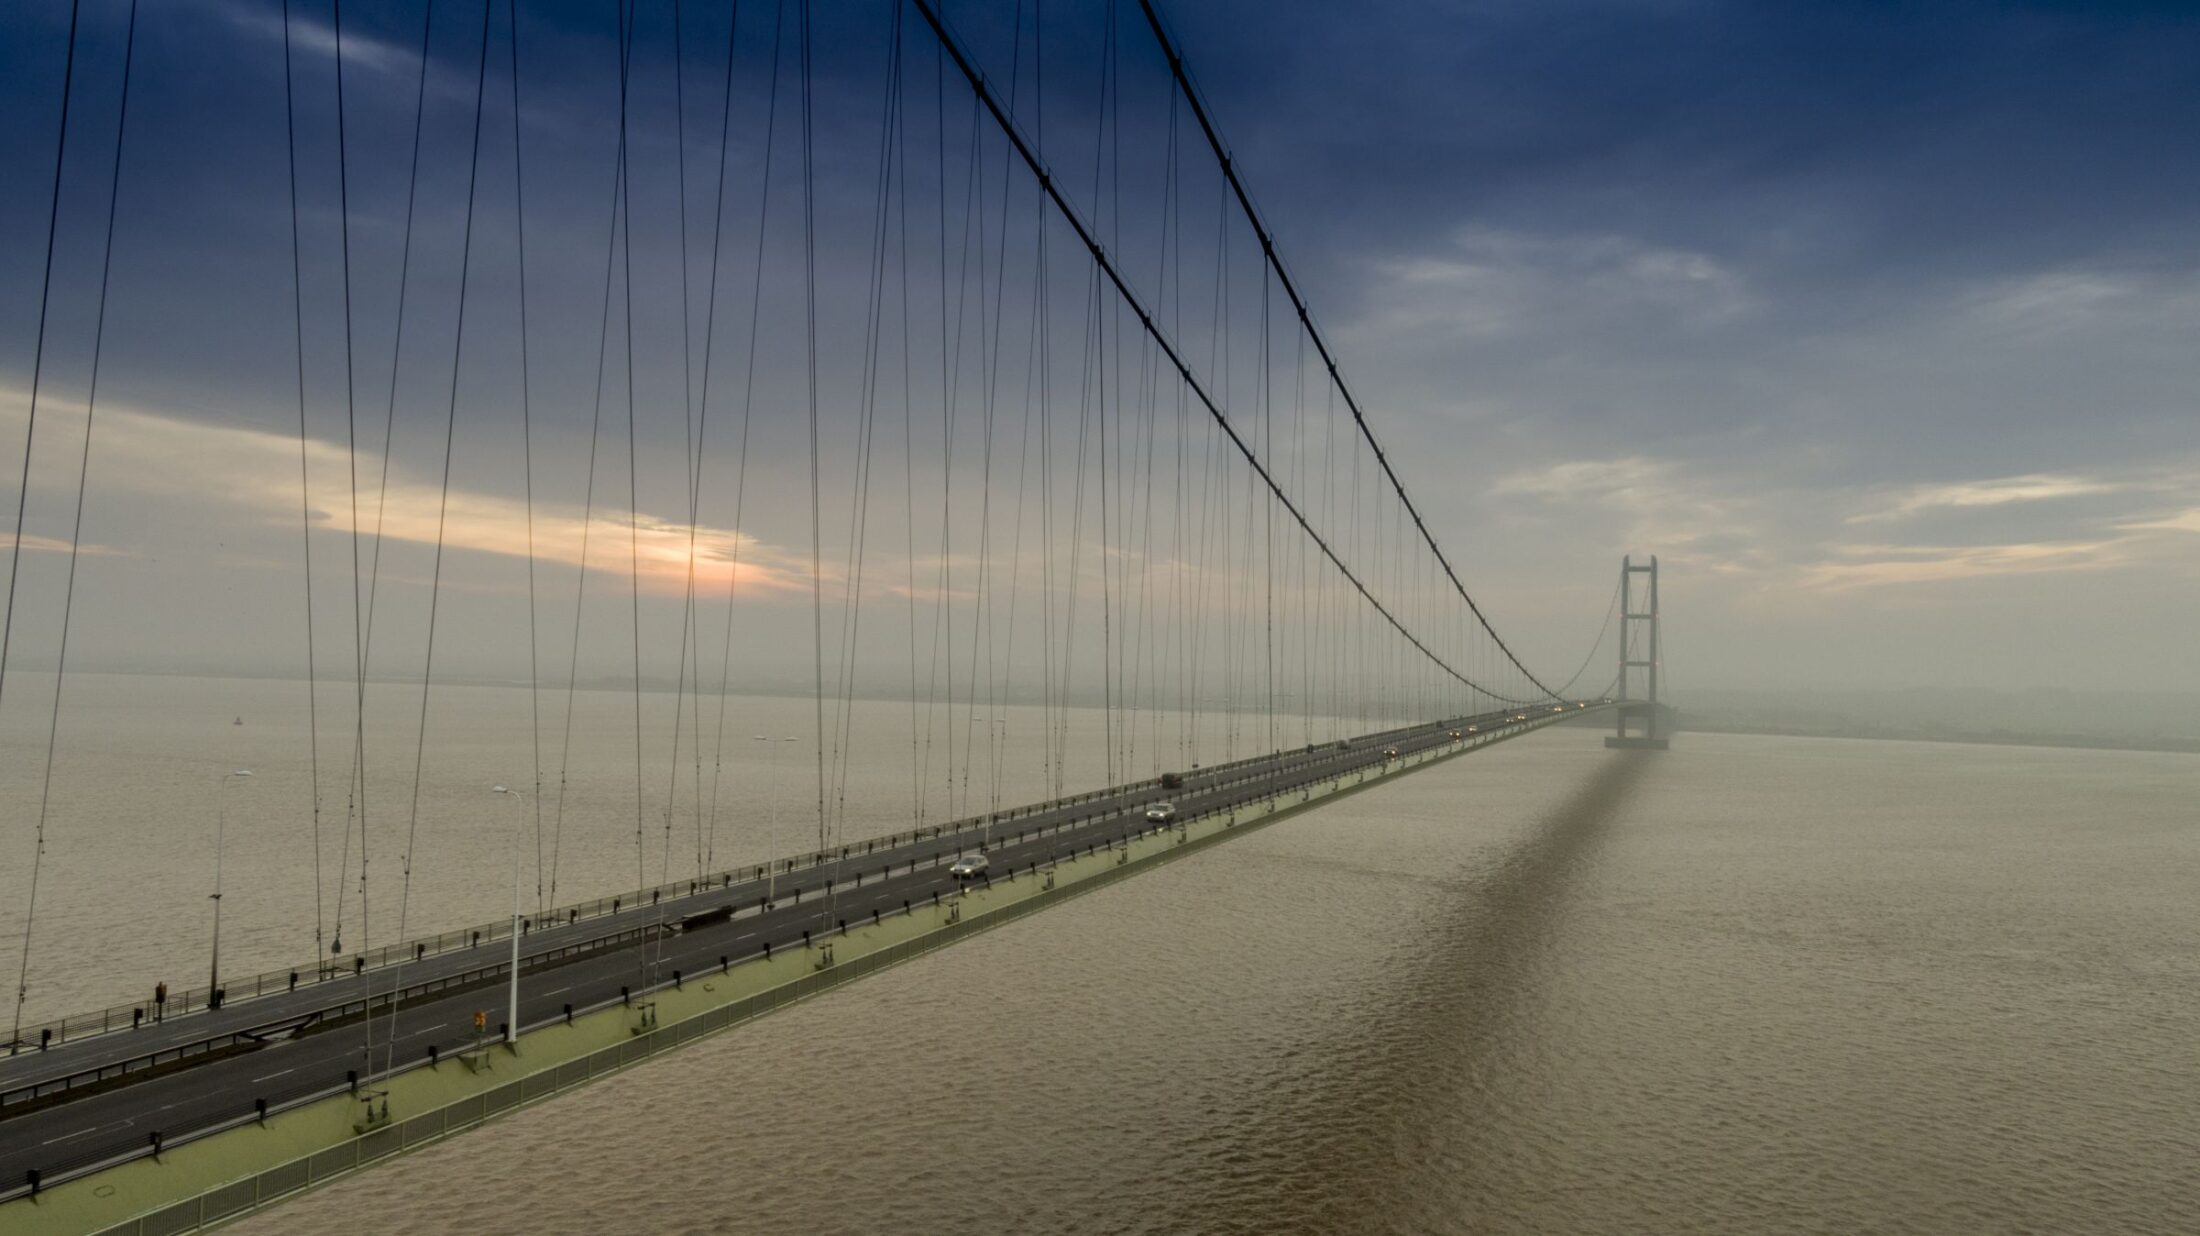 Humber Bridge by drone